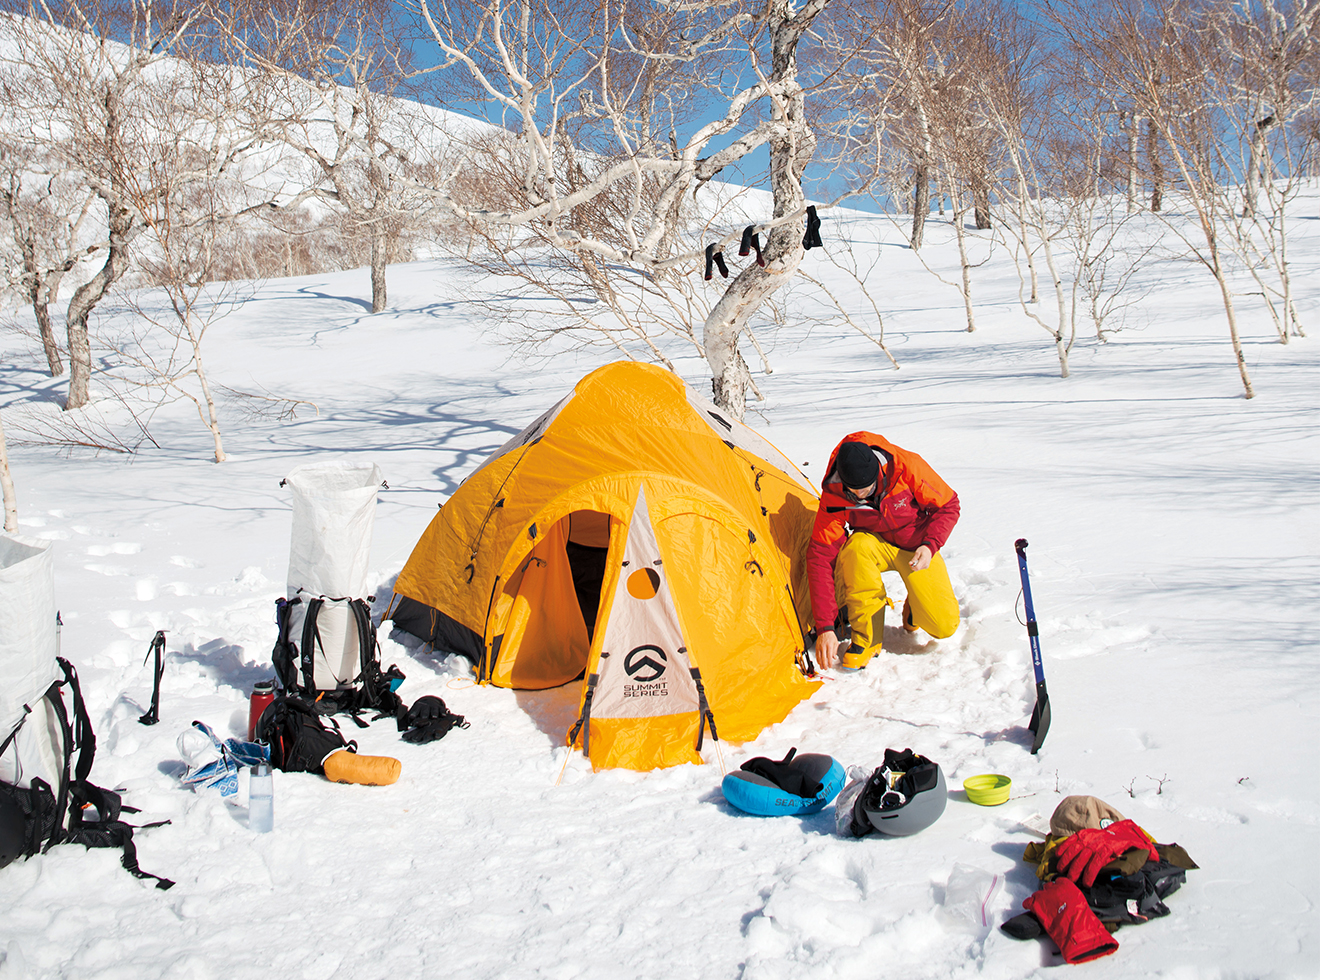 Every night, the team made camp in the snow, relaxed, and cooked their meals over portable stoves.